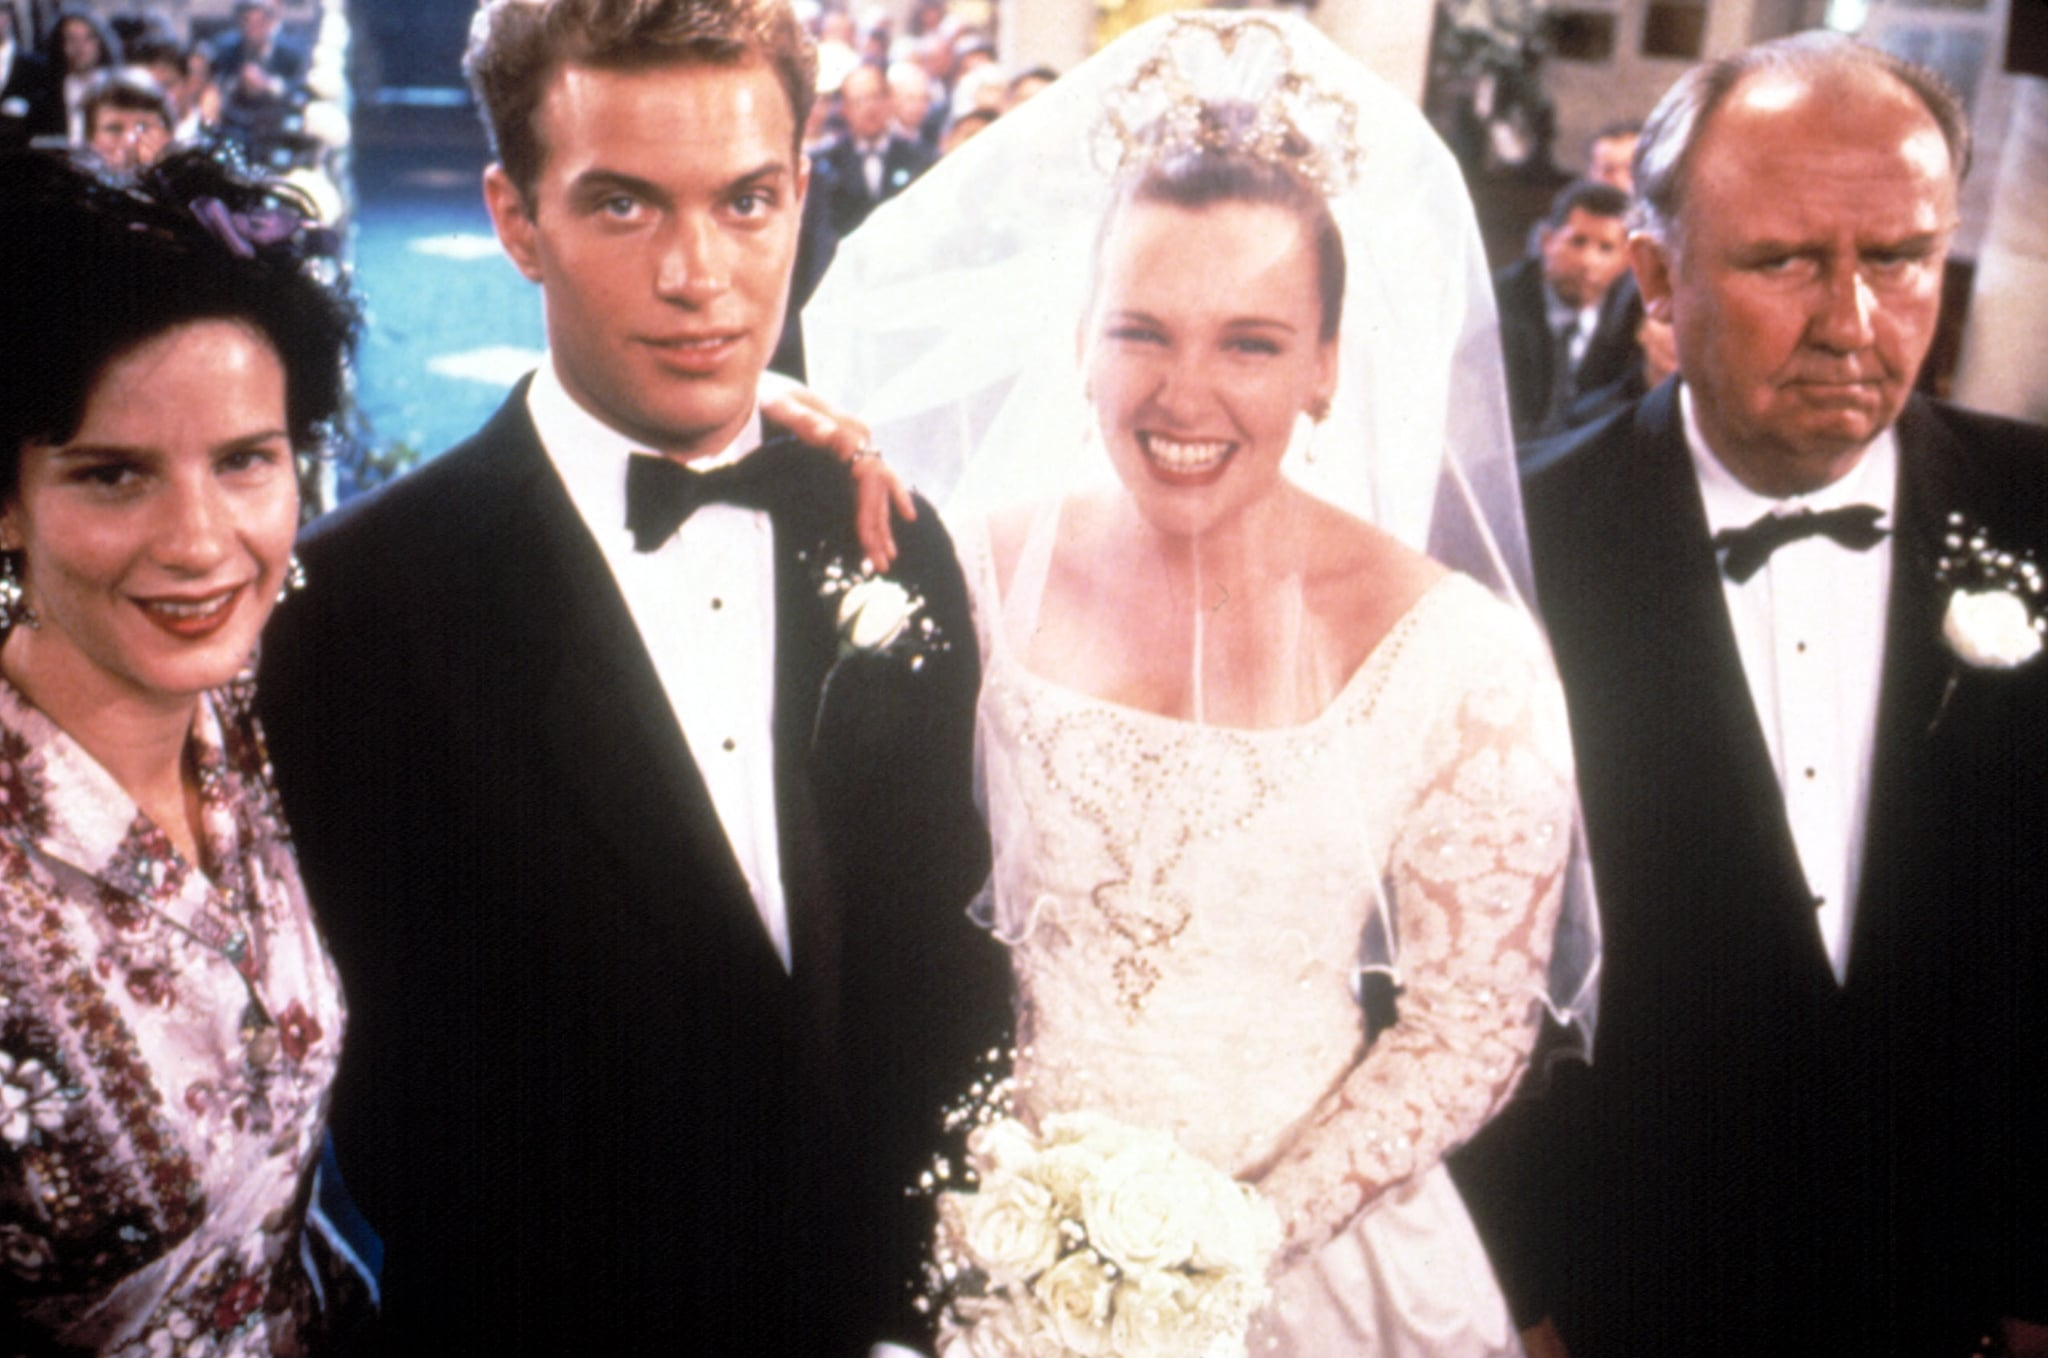 MURIEL'S WEDDING, Rachel Griffiths, Daniel Lapaine, Toni Collette, Bill Hunter, 1994, (c) Miramax/courtesy Everett Collection